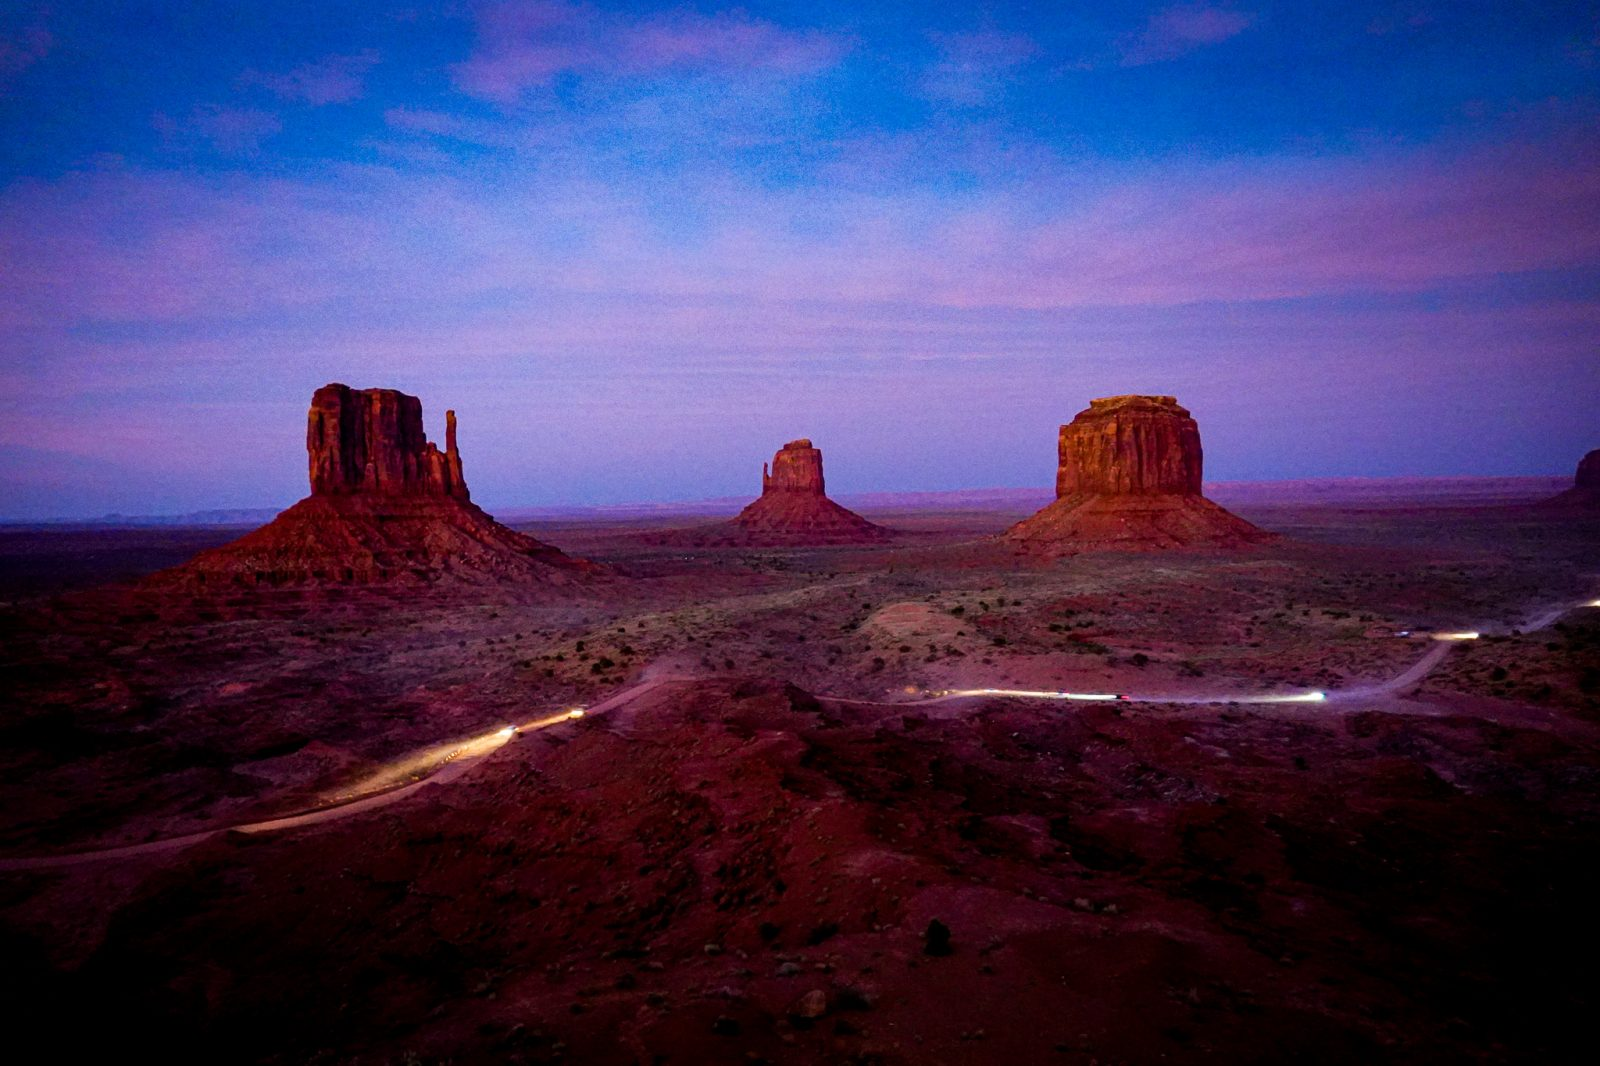 Solnedgang Monument Valley